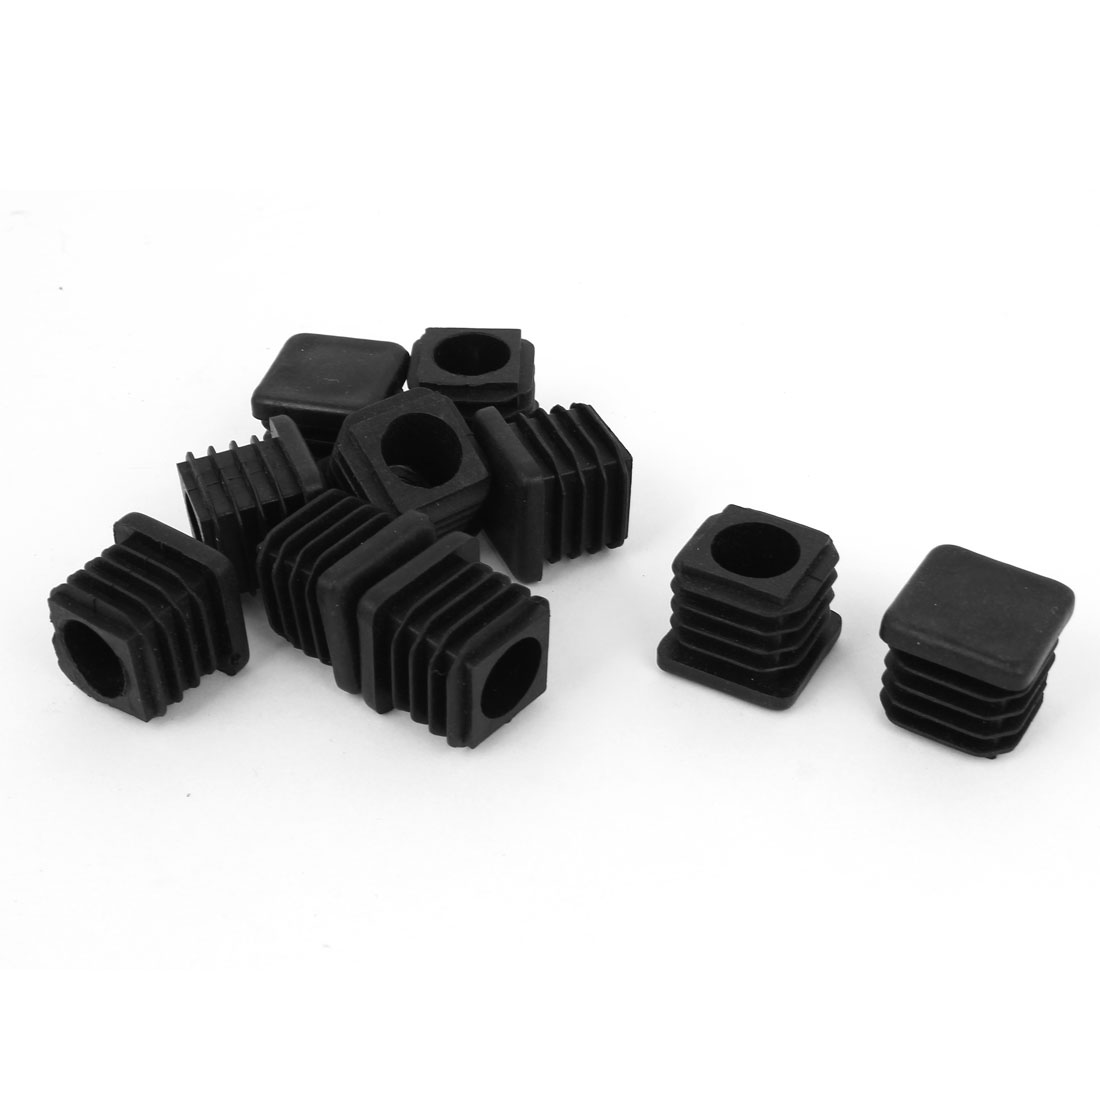 10 Pieces Black Plastic Square Blanking End Caps Tubing Tube Inserts 19mm x 19mm